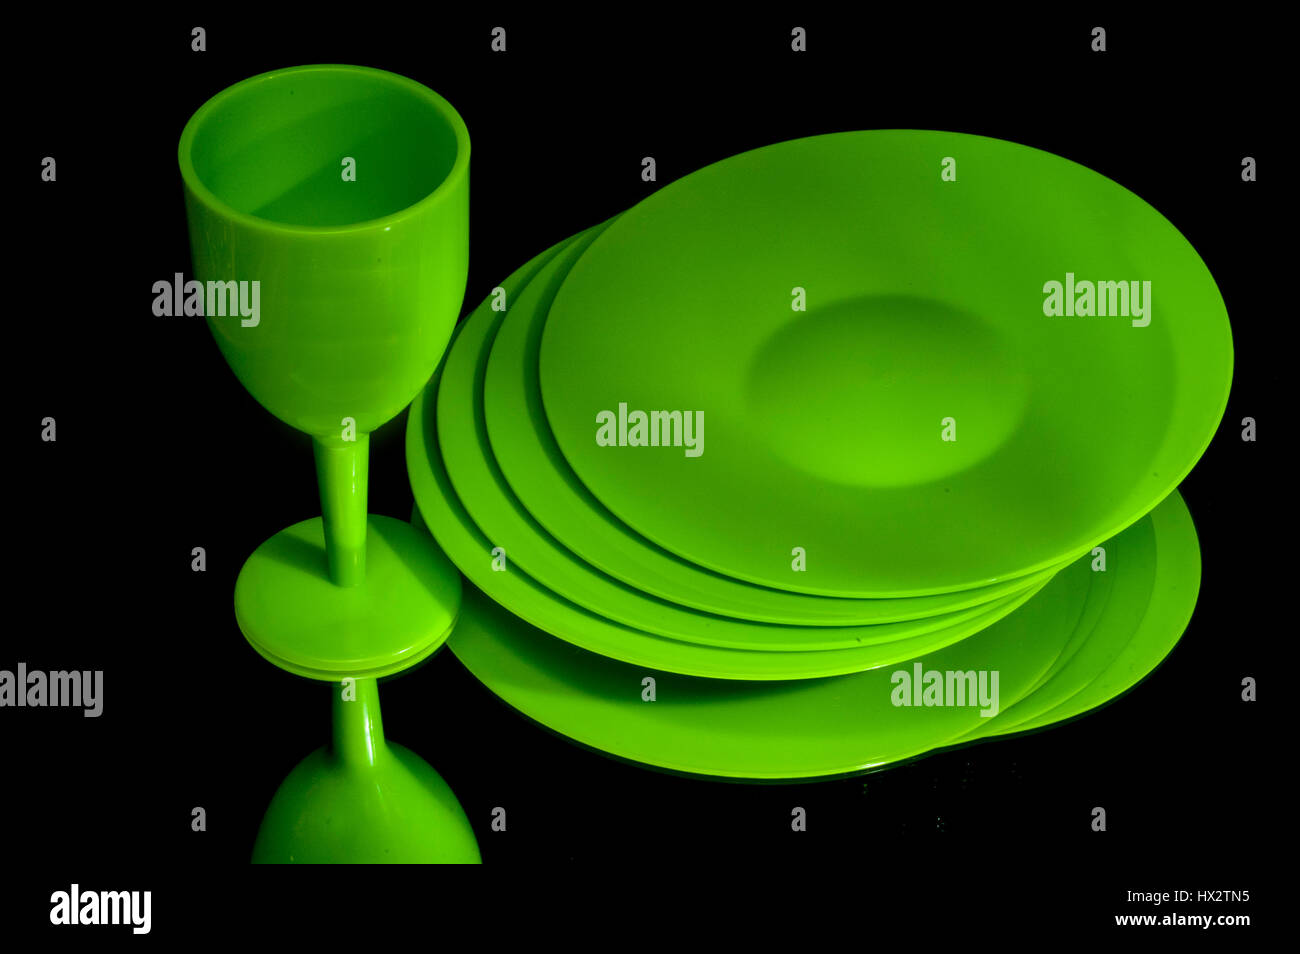 green plastic plates and cup - Stock Image  sc 1 st  Alamy & Plastic Plates Stock Photos \u0026 Plastic Plates Stock Images - Alamy